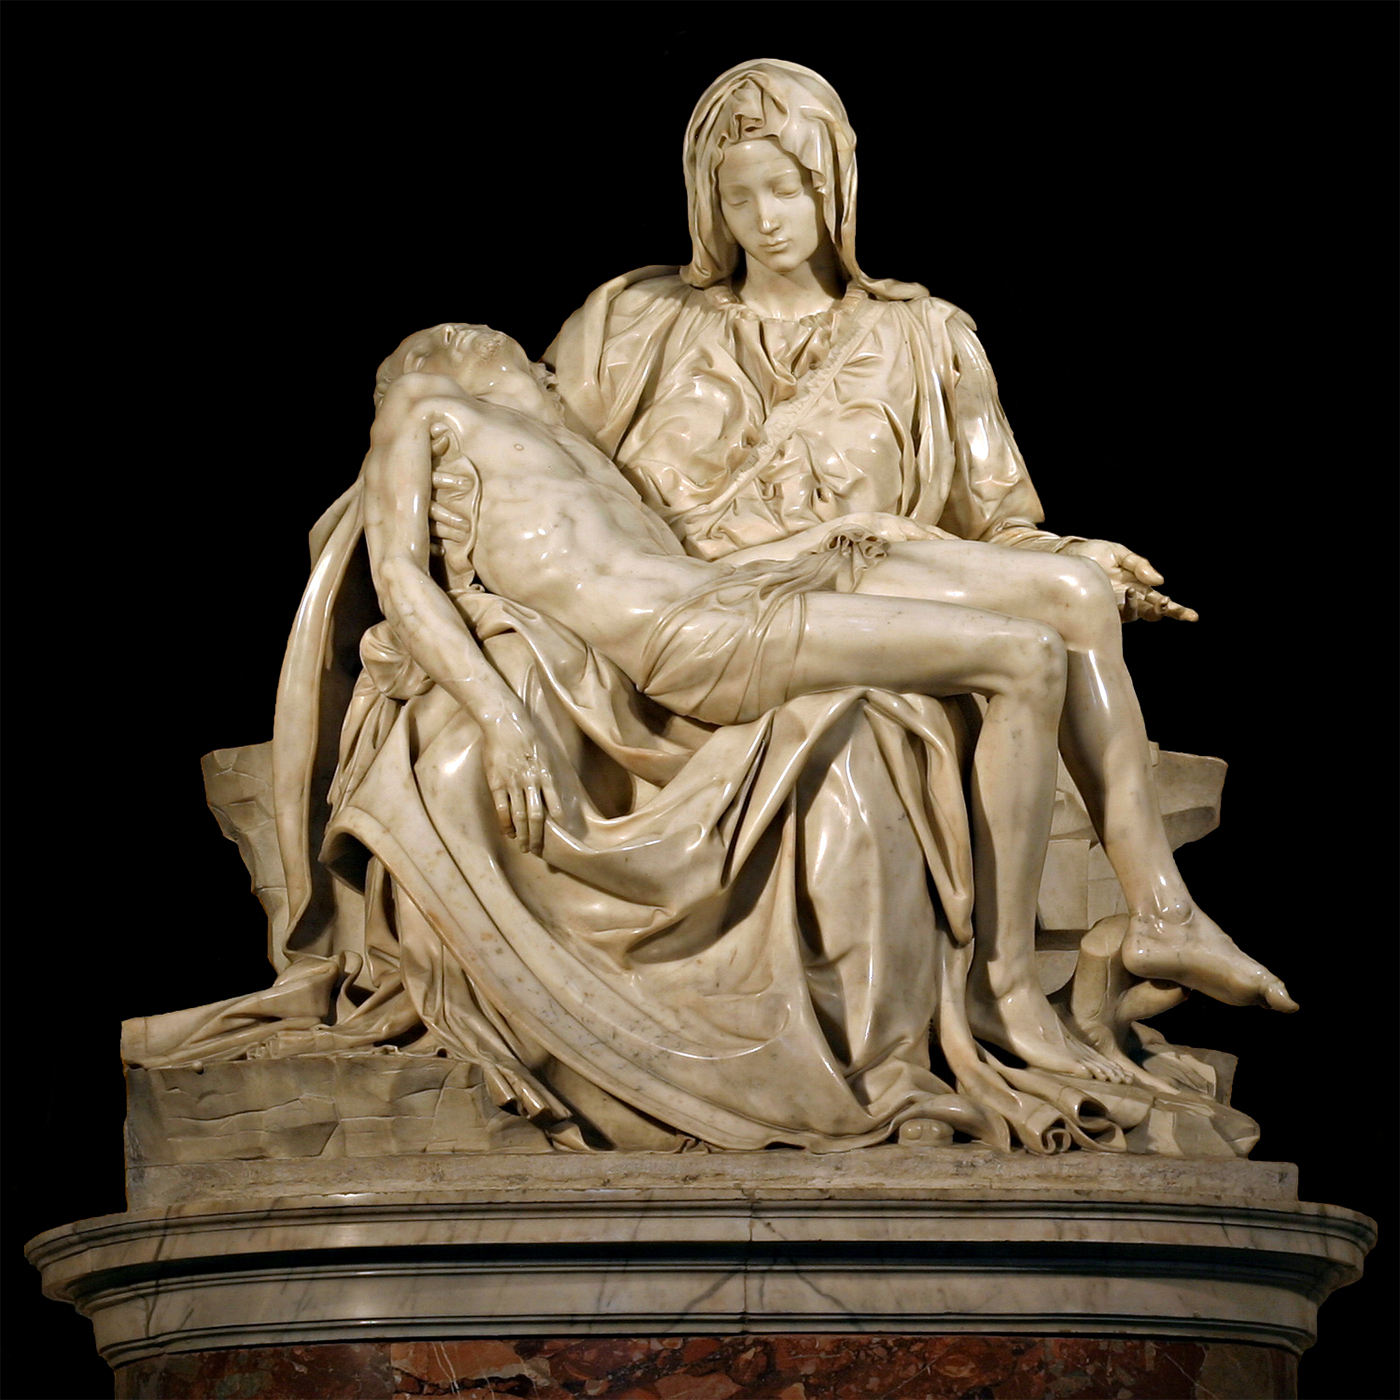 The Pietà by Michelangelo Buonarroti in all its splendour - Wikimedia.org , CC BY 2.5